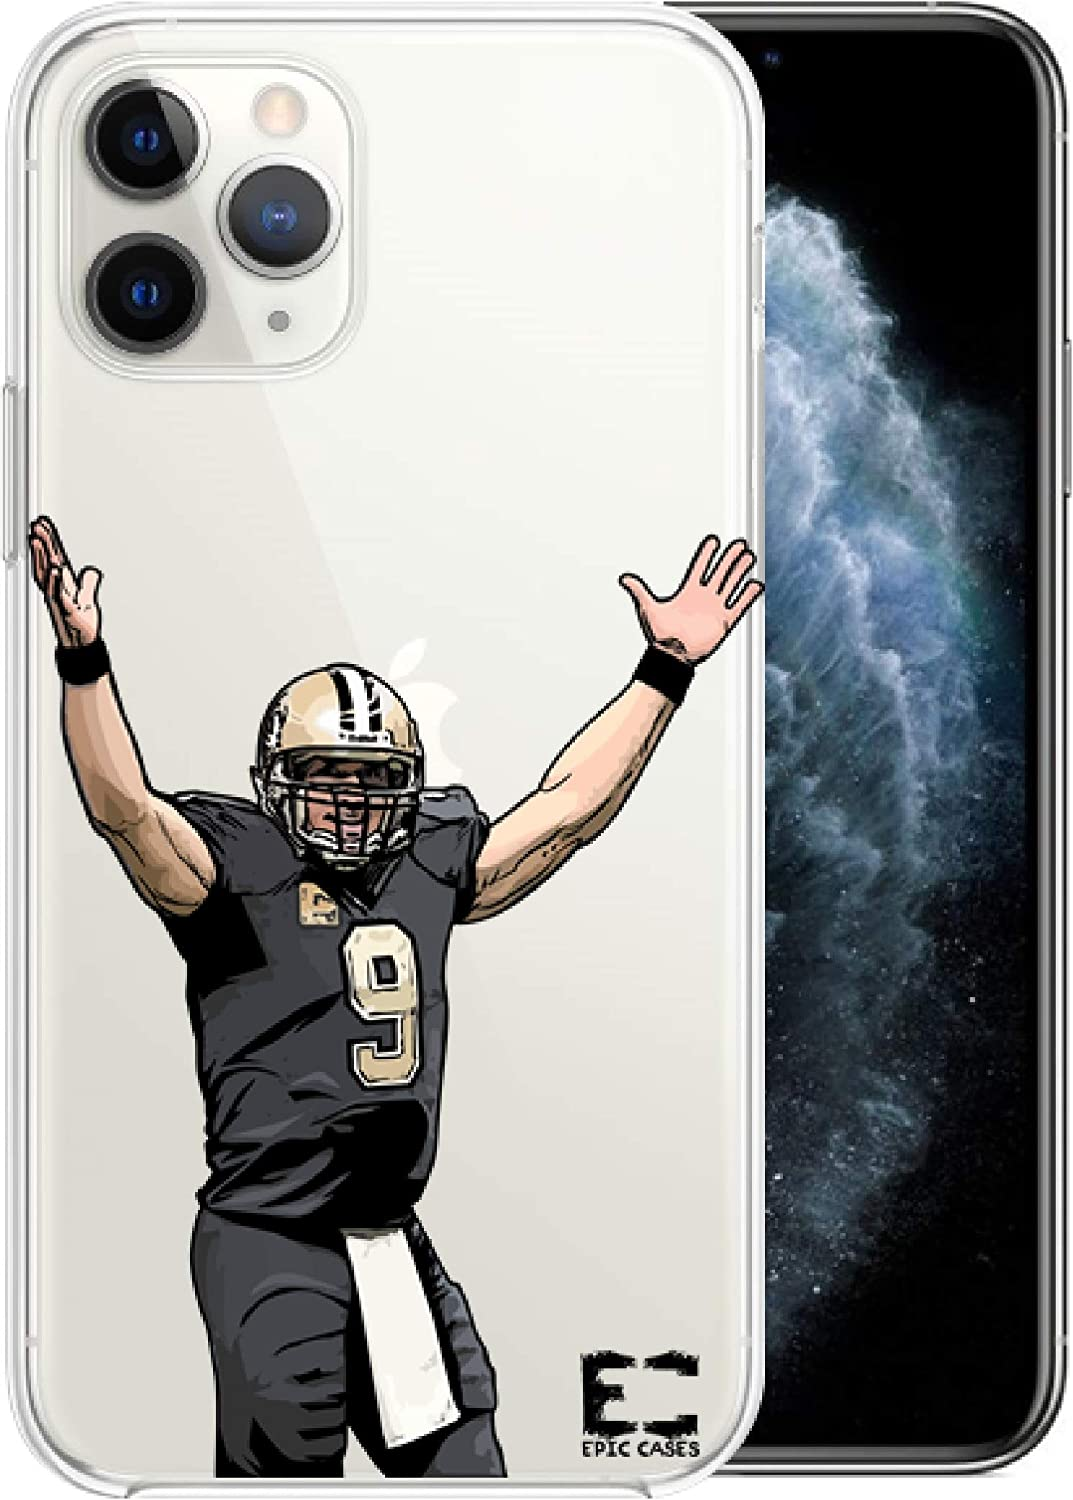 Epic Cases iPhone 6 Plus iPhone 7 iPhone 8 Plus Case Ultra Slim Crystal Clear Football Series Soft Transparent TPU Case Cover Apple (Breesus, iPhone 6/7/8 Plus)